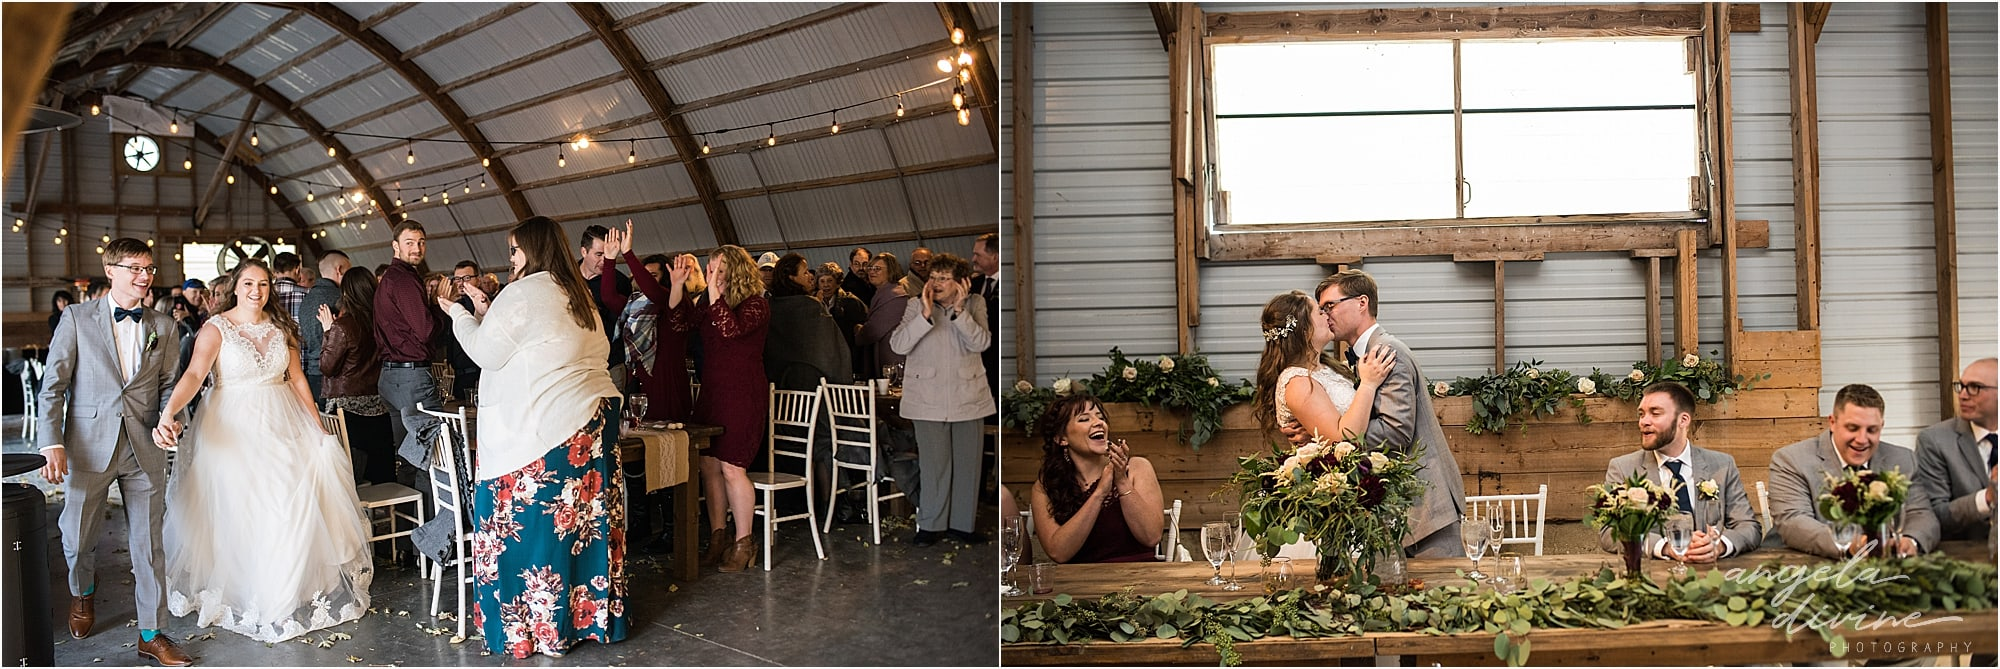 The Cottage Farmhouse Wedding Grand march